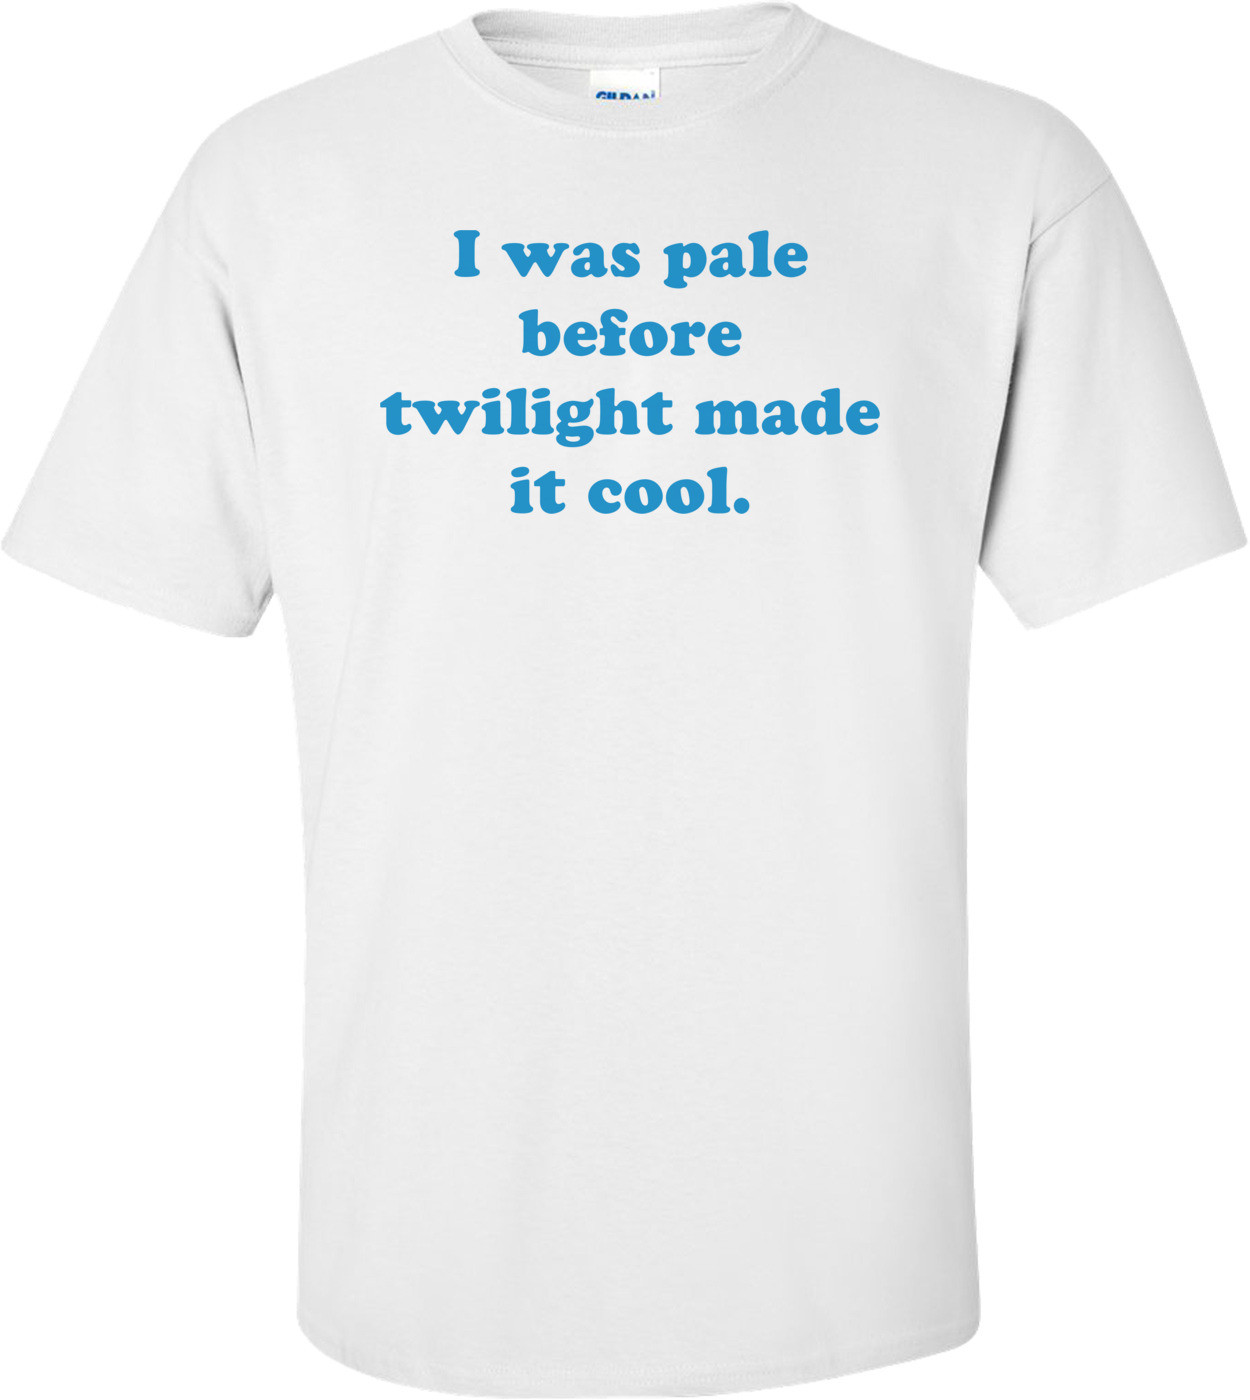 I was pale before twilight made it cool. Shirt